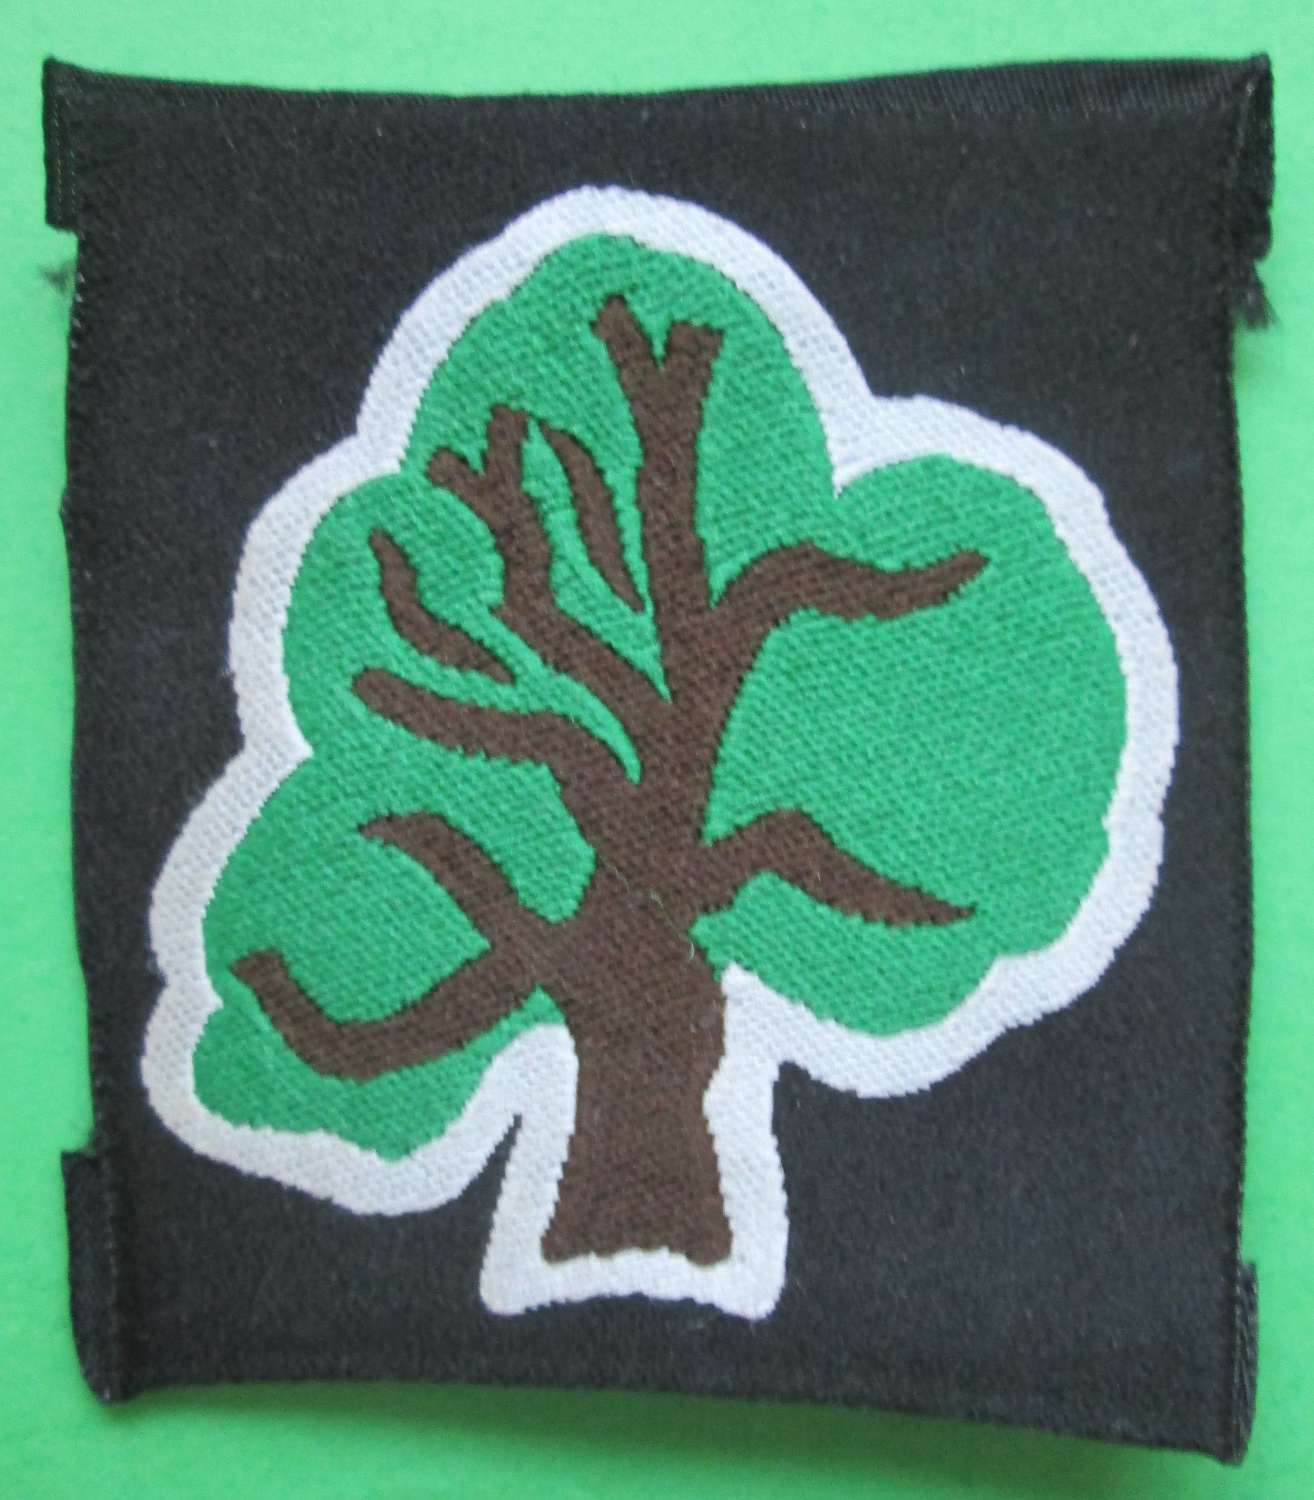 A 46TH (NORTH MIDLAND & WEST RIDING) DIVISION FORMATION PATCH